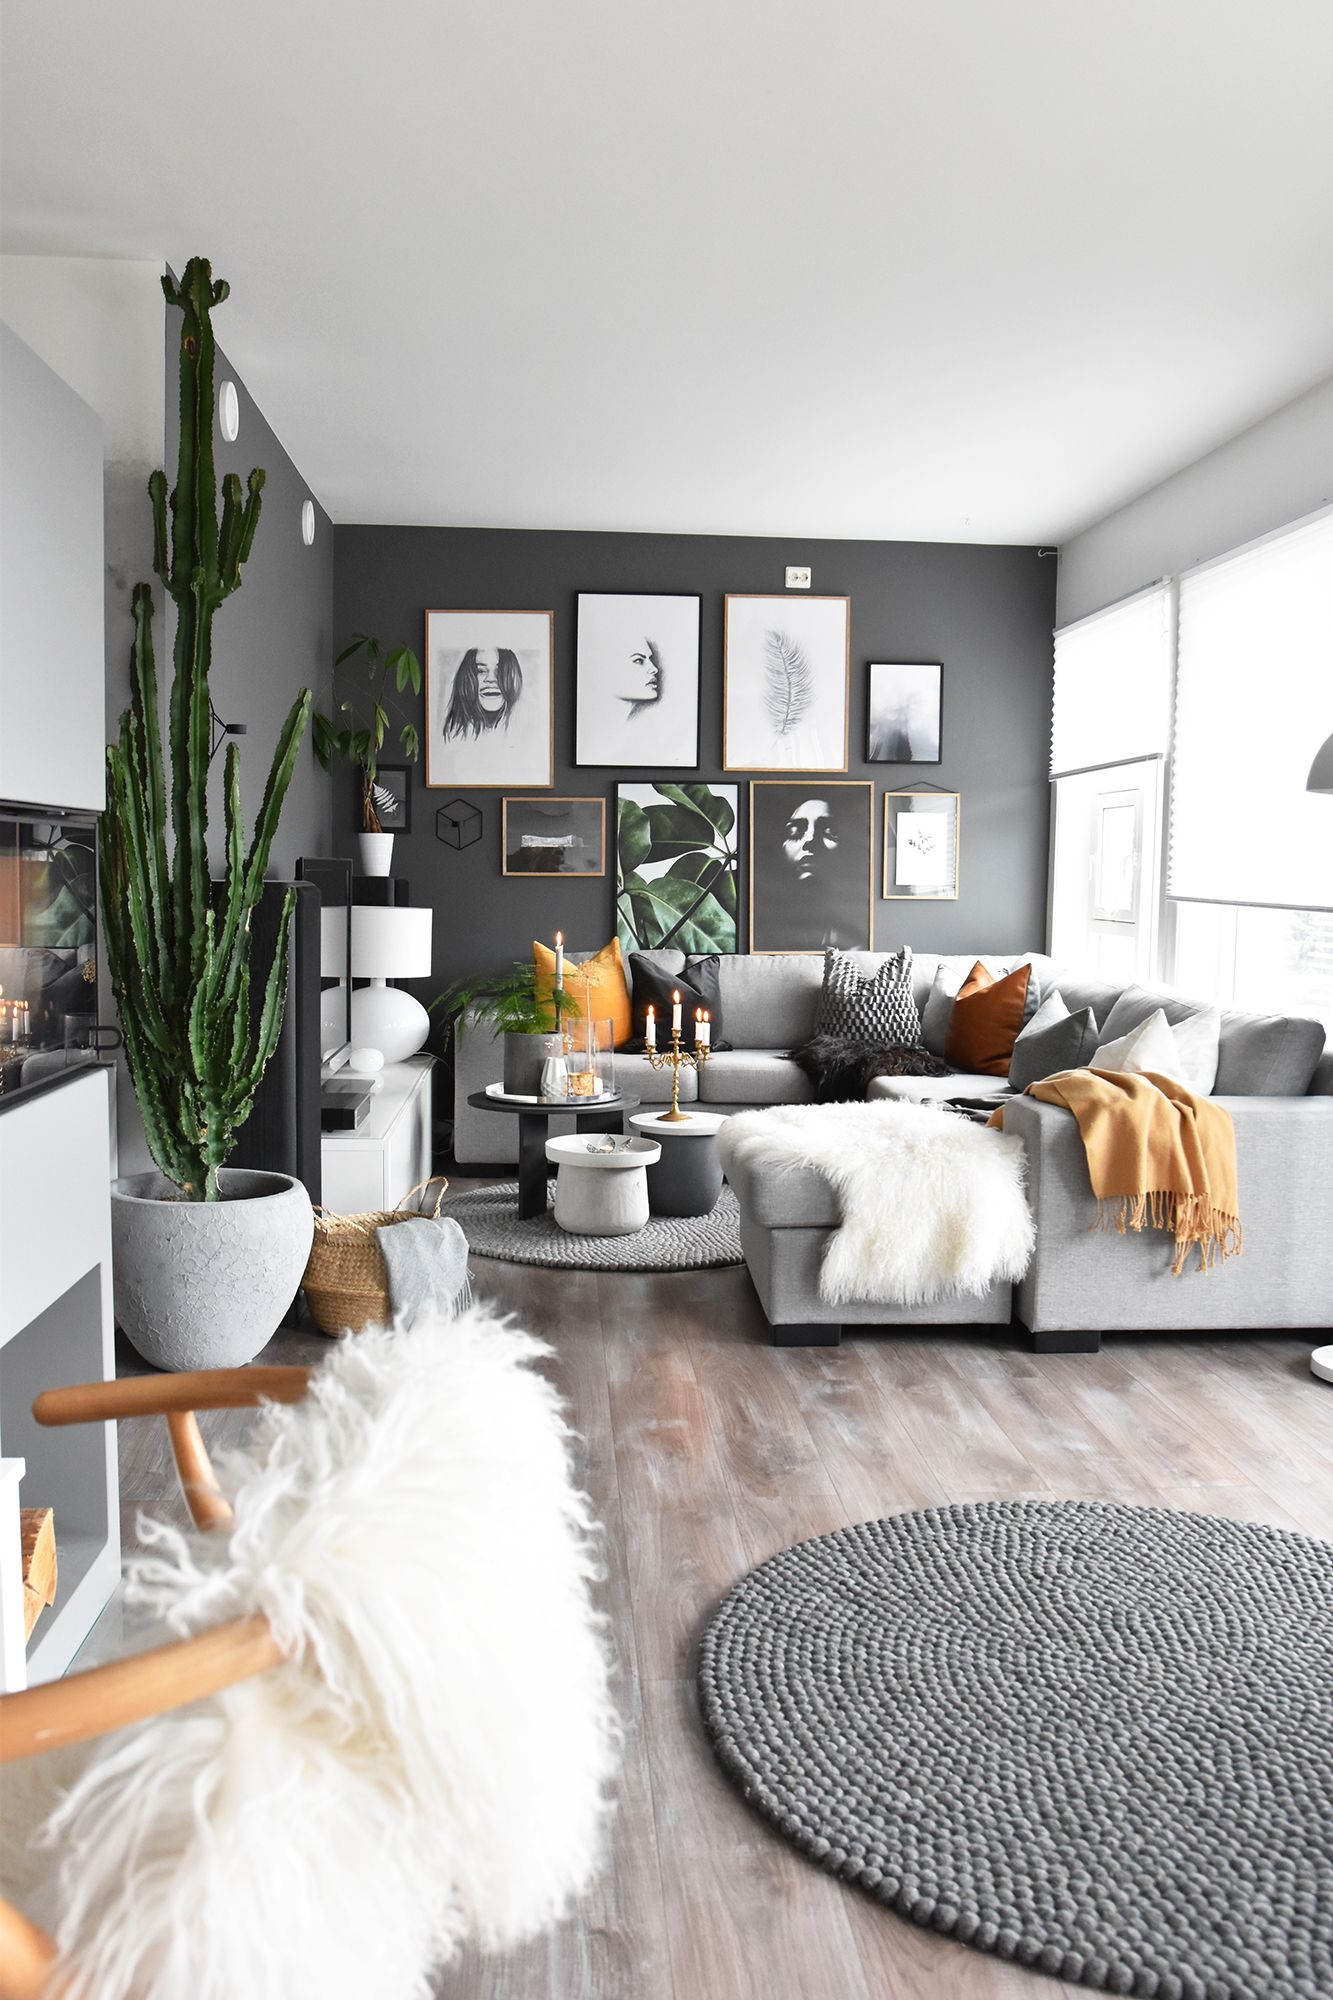 Family Room Design Ideas On A Budget: Welcome To The Jungle! – Maren Baxter